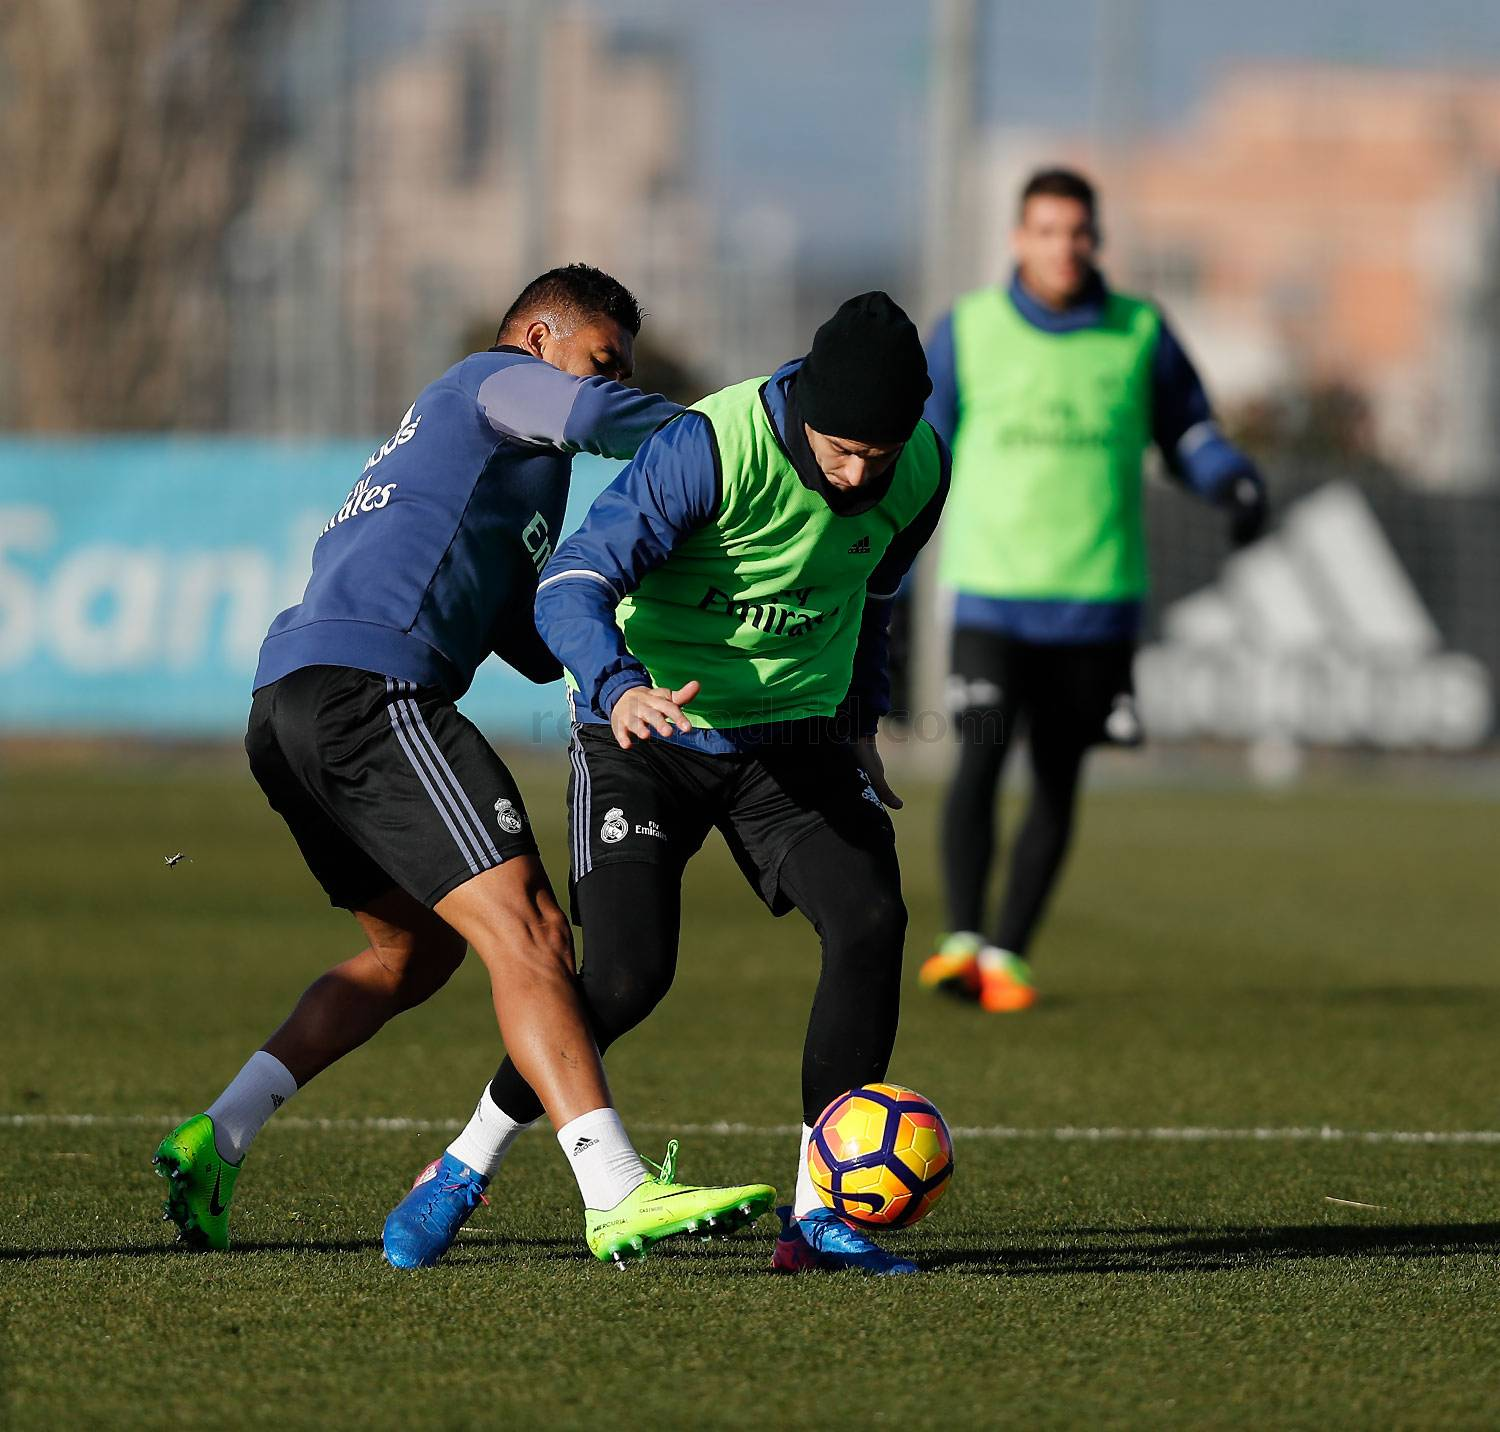 Real Madrid - Entrenamiento del Real Madrid - 07-02-2017